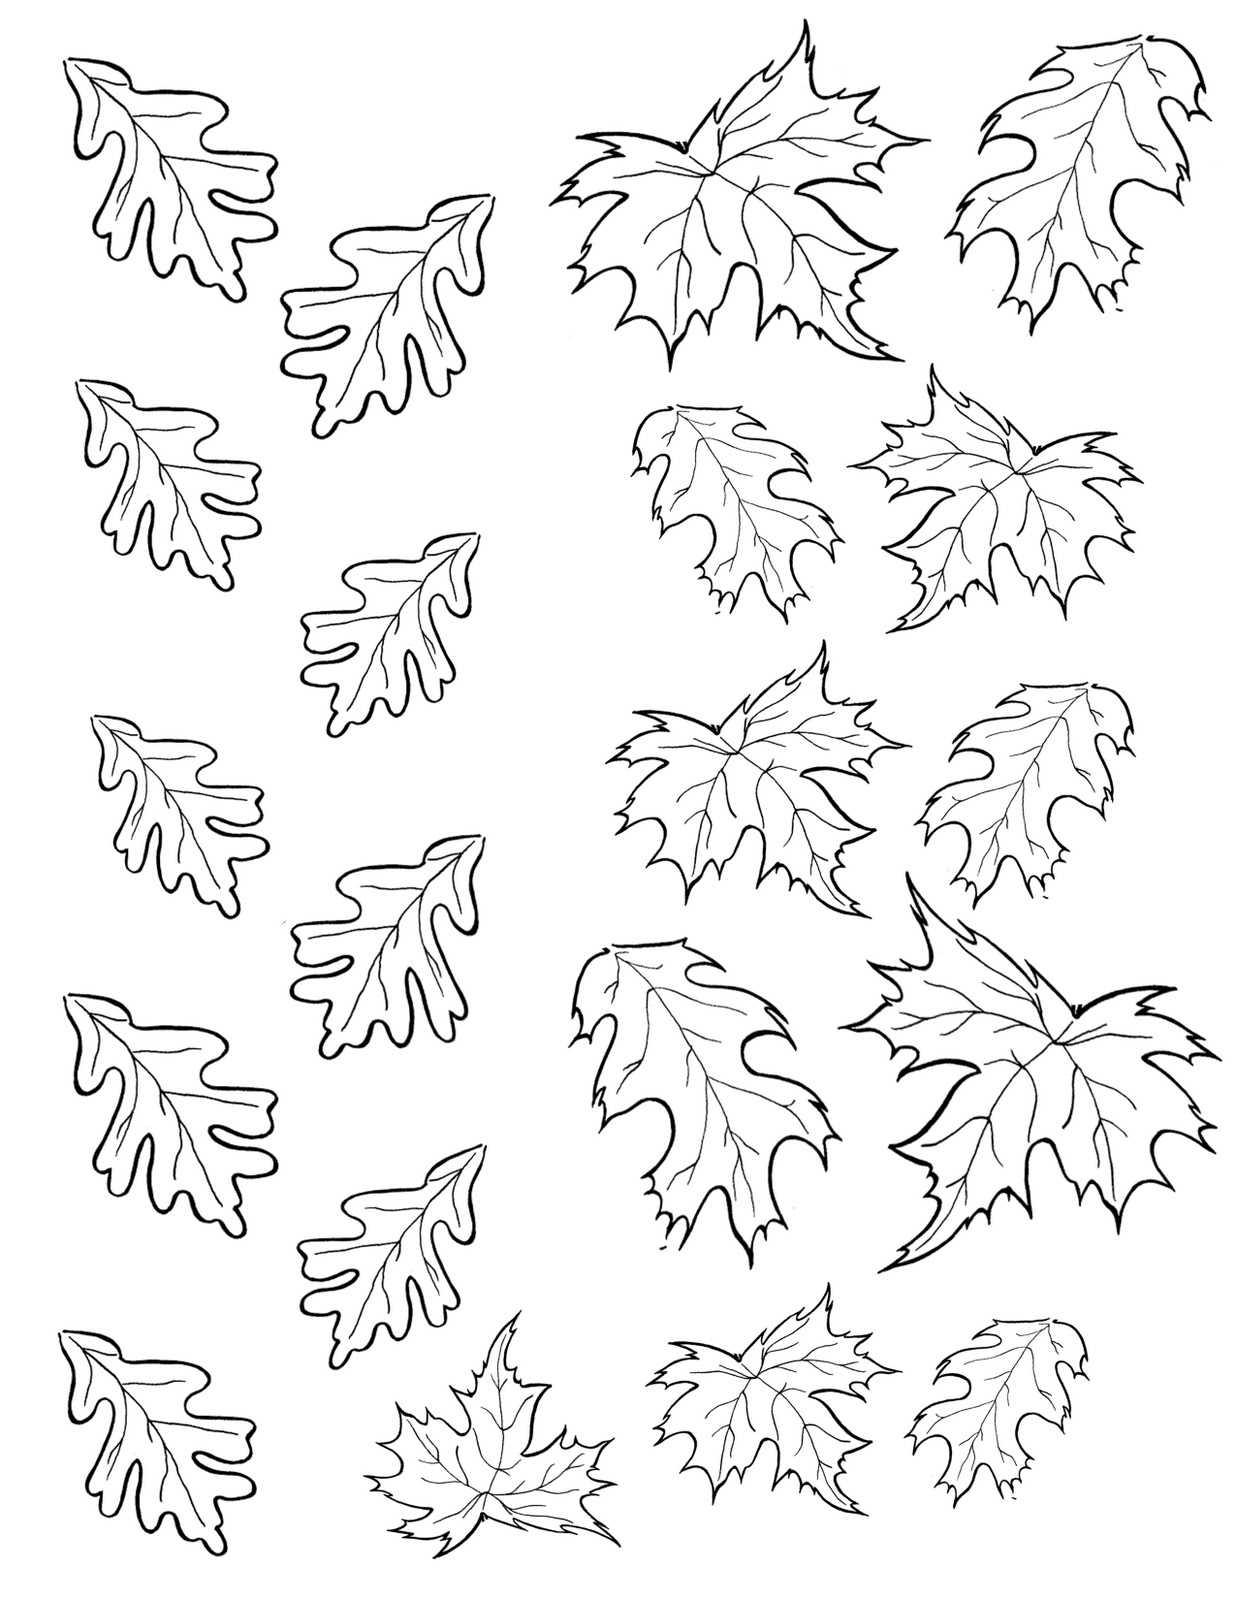 Found a leaves coloring page online and my graphic designer hubby